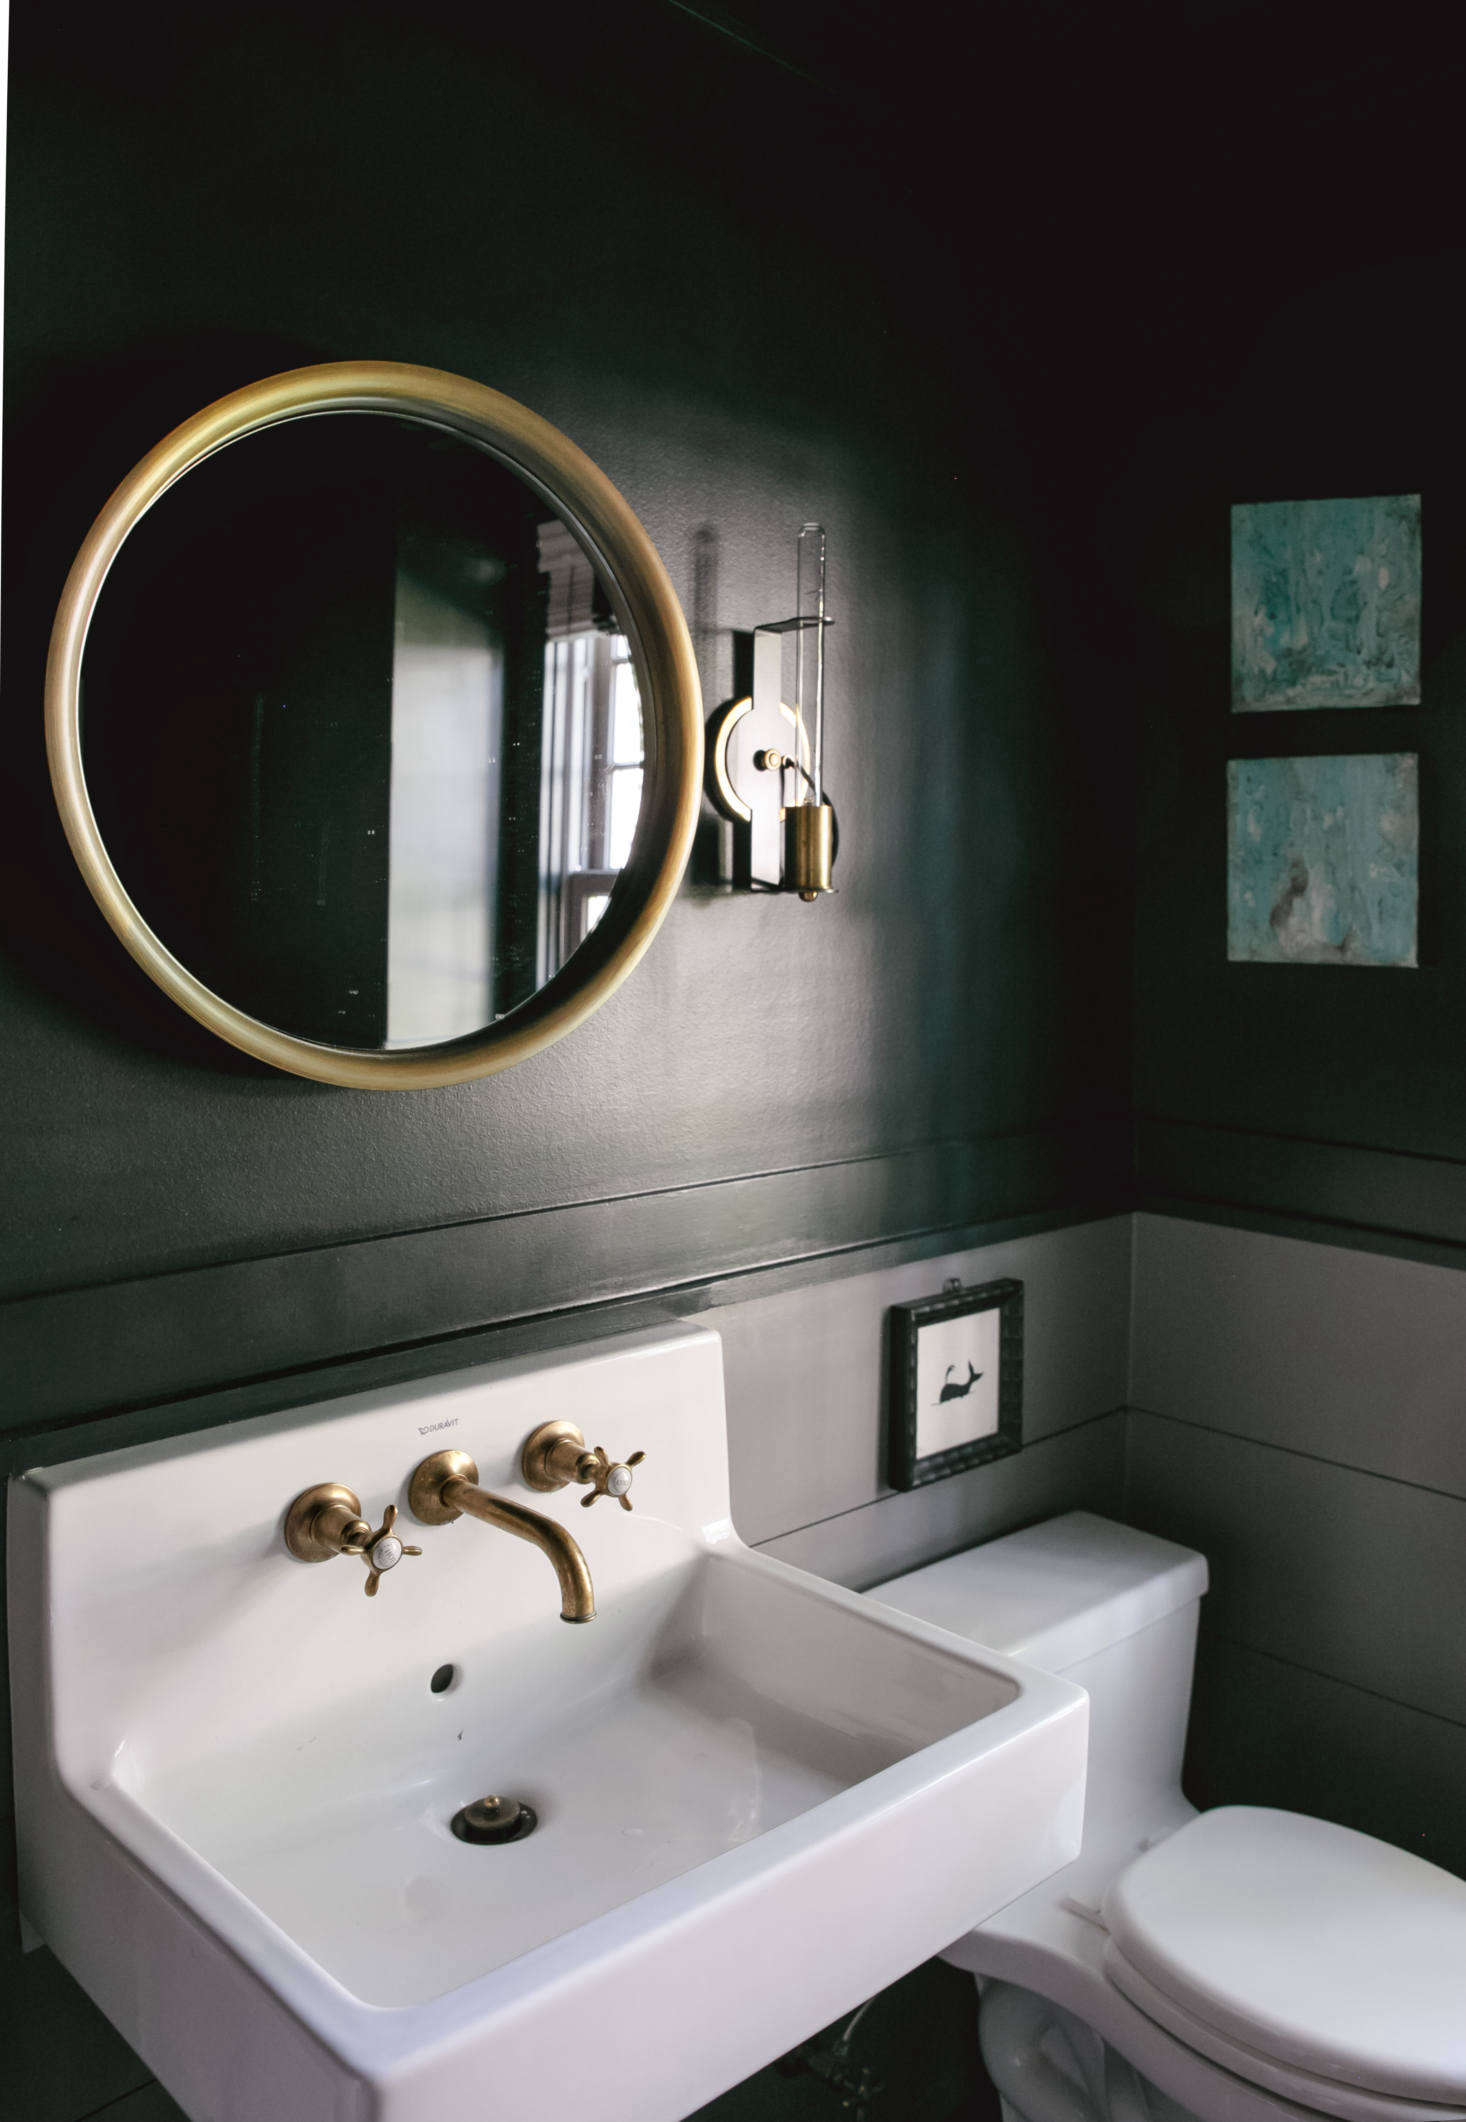 The wall-mounted Vero sink is from Duravit and the bath fixtures are Waterworks Highgate in brass.